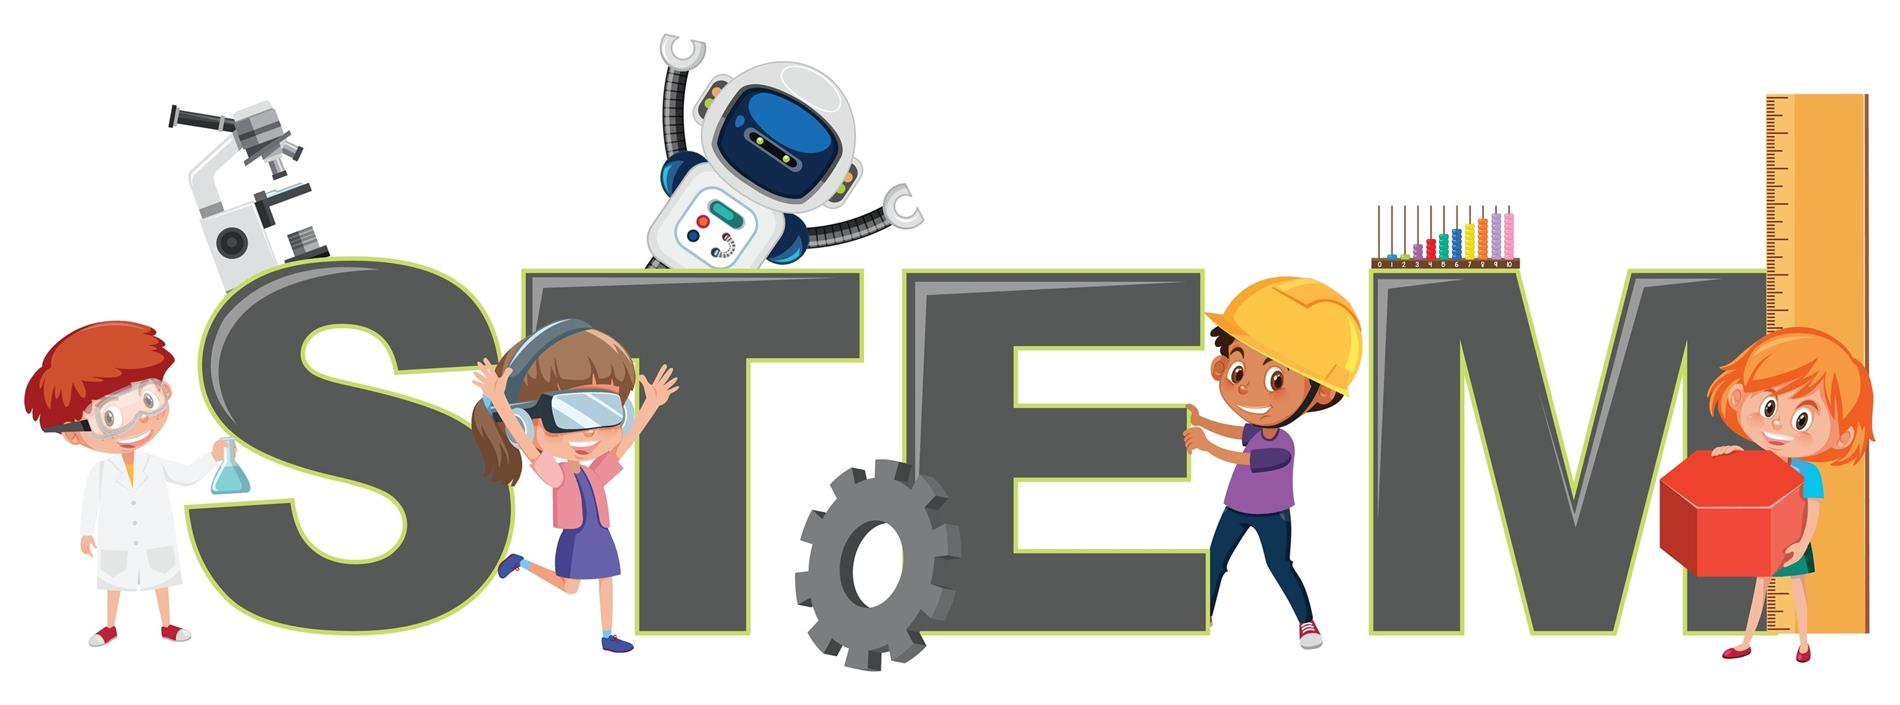 clipart of students with STEM activities